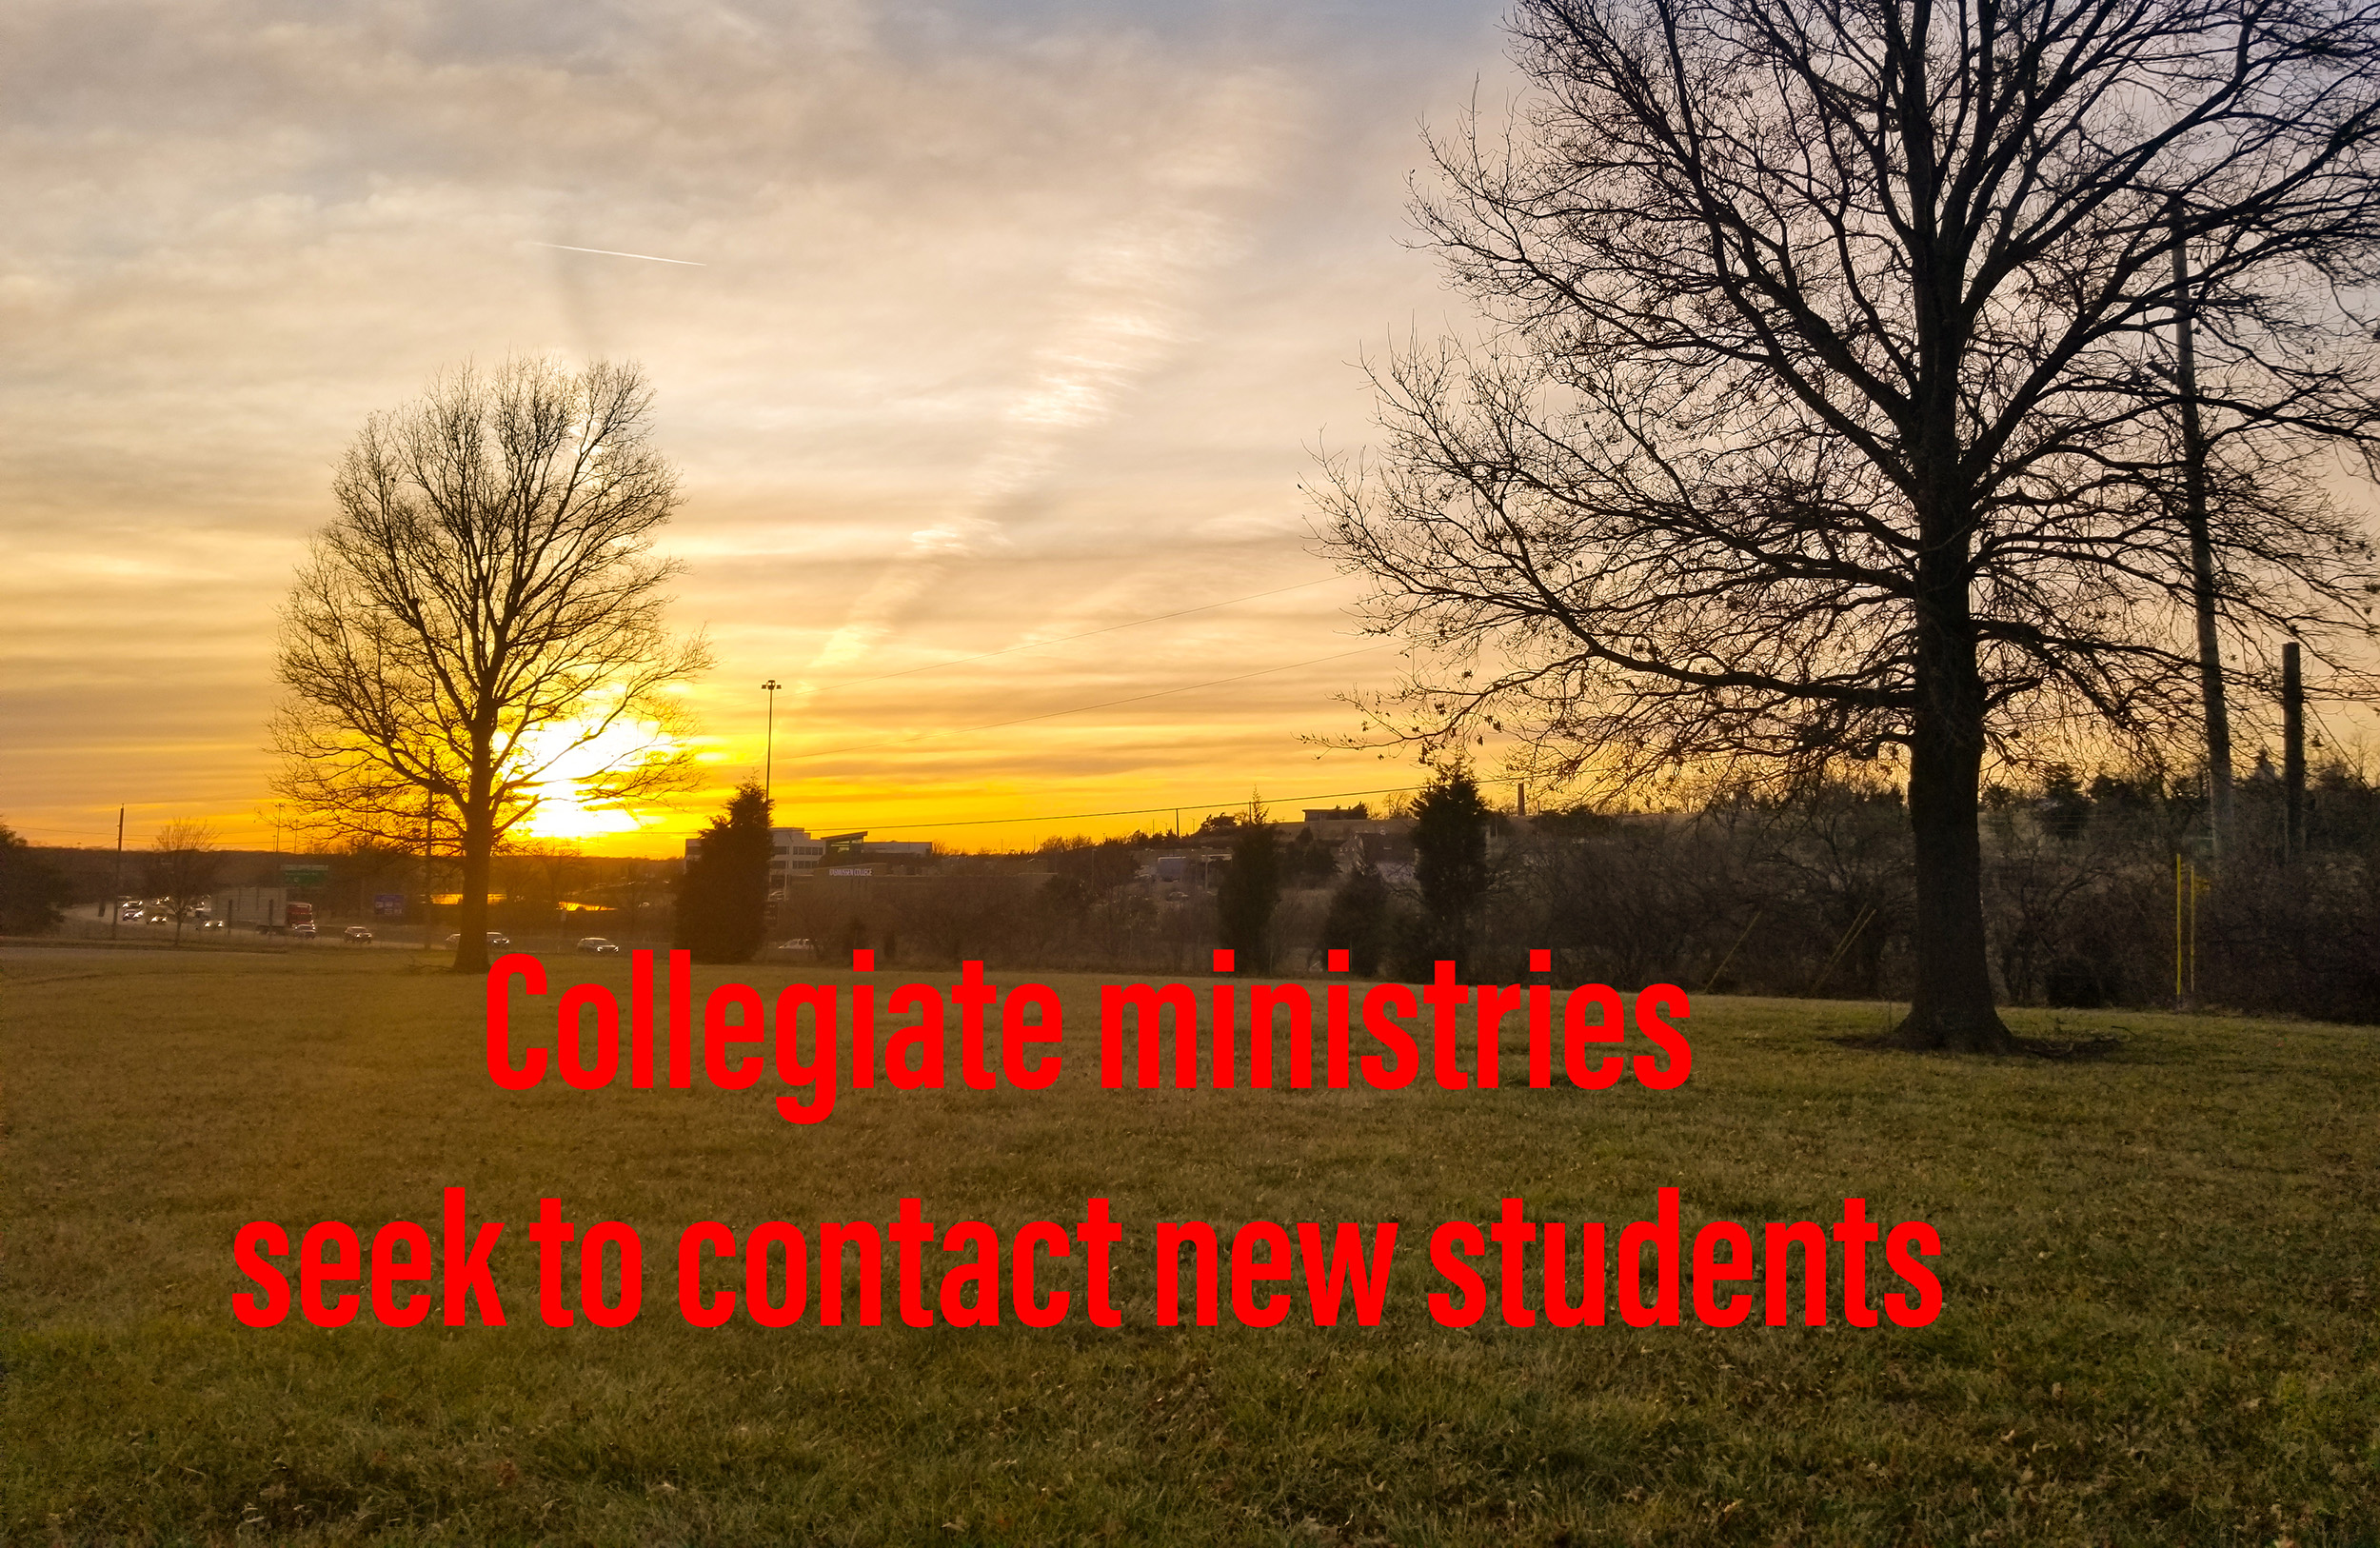 Collegiate ministries seek to contact new students